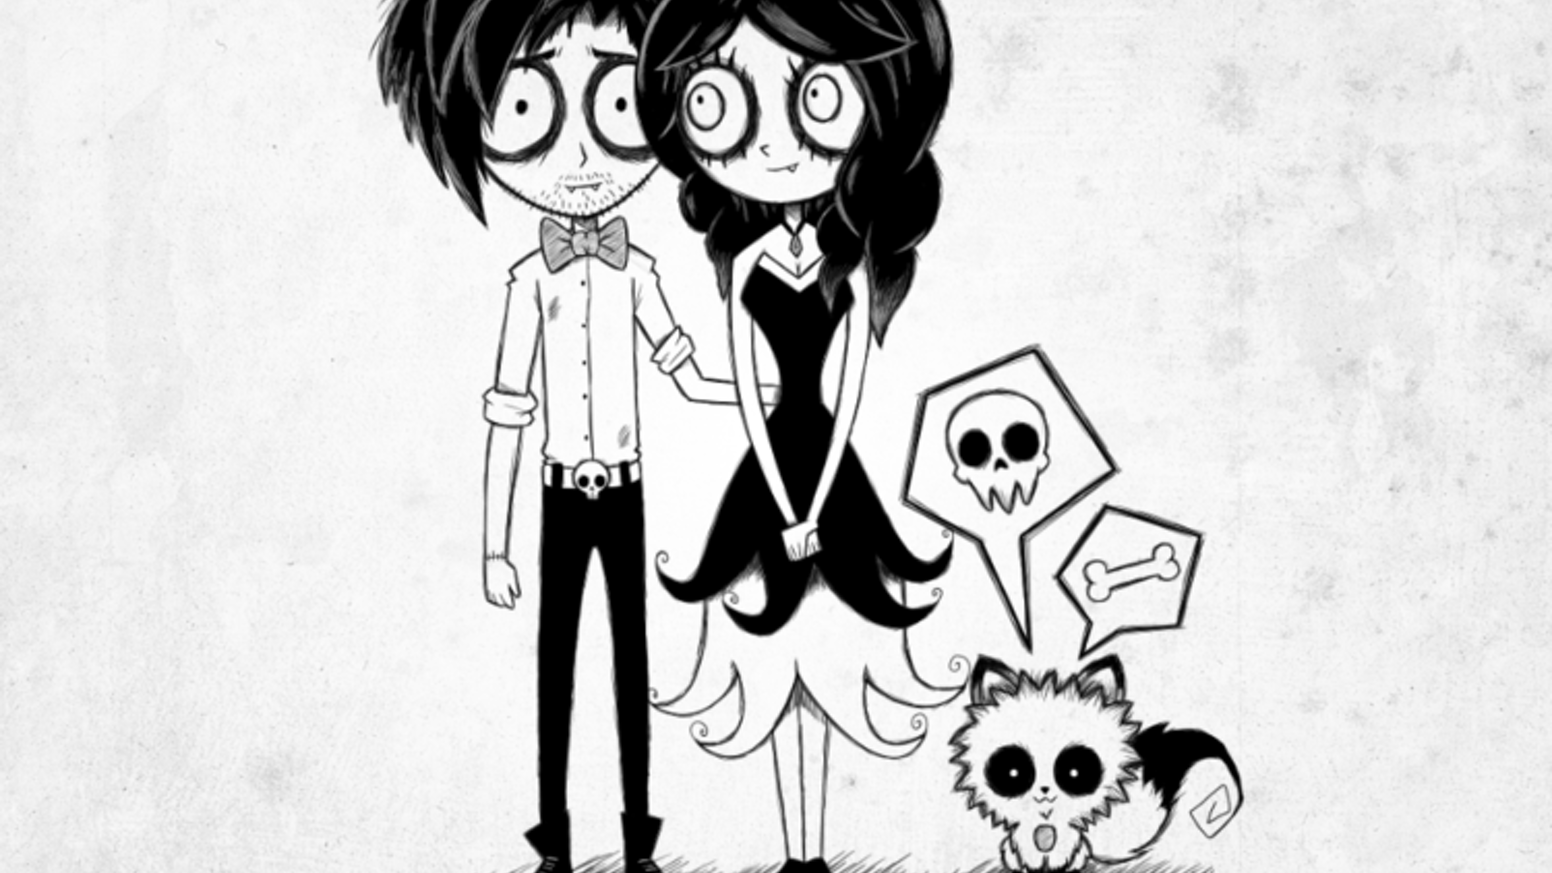 Get a custom family portrait tim burton style and some creepy puppy stickers